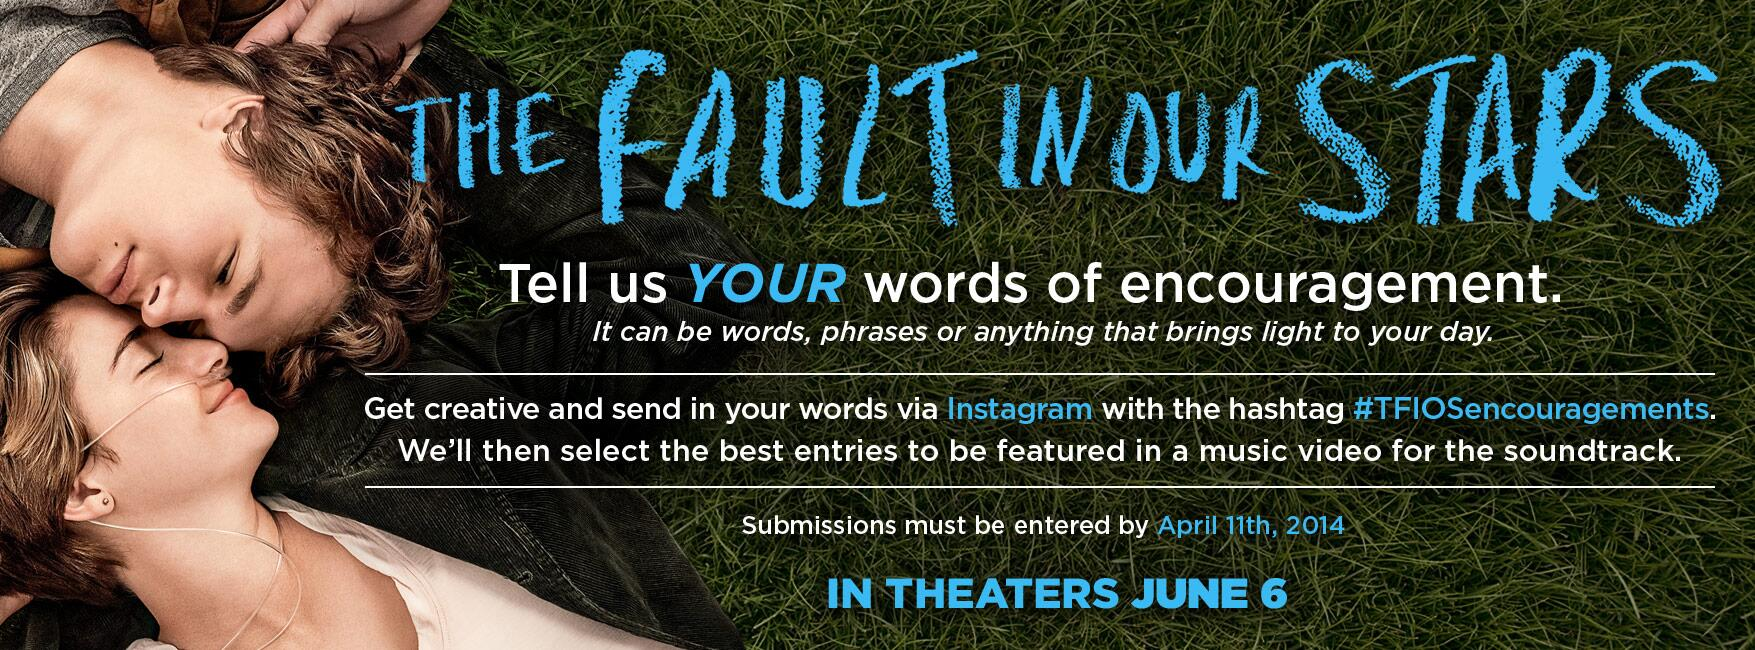 http://thefaultinourstars.atlanticrecords.com/